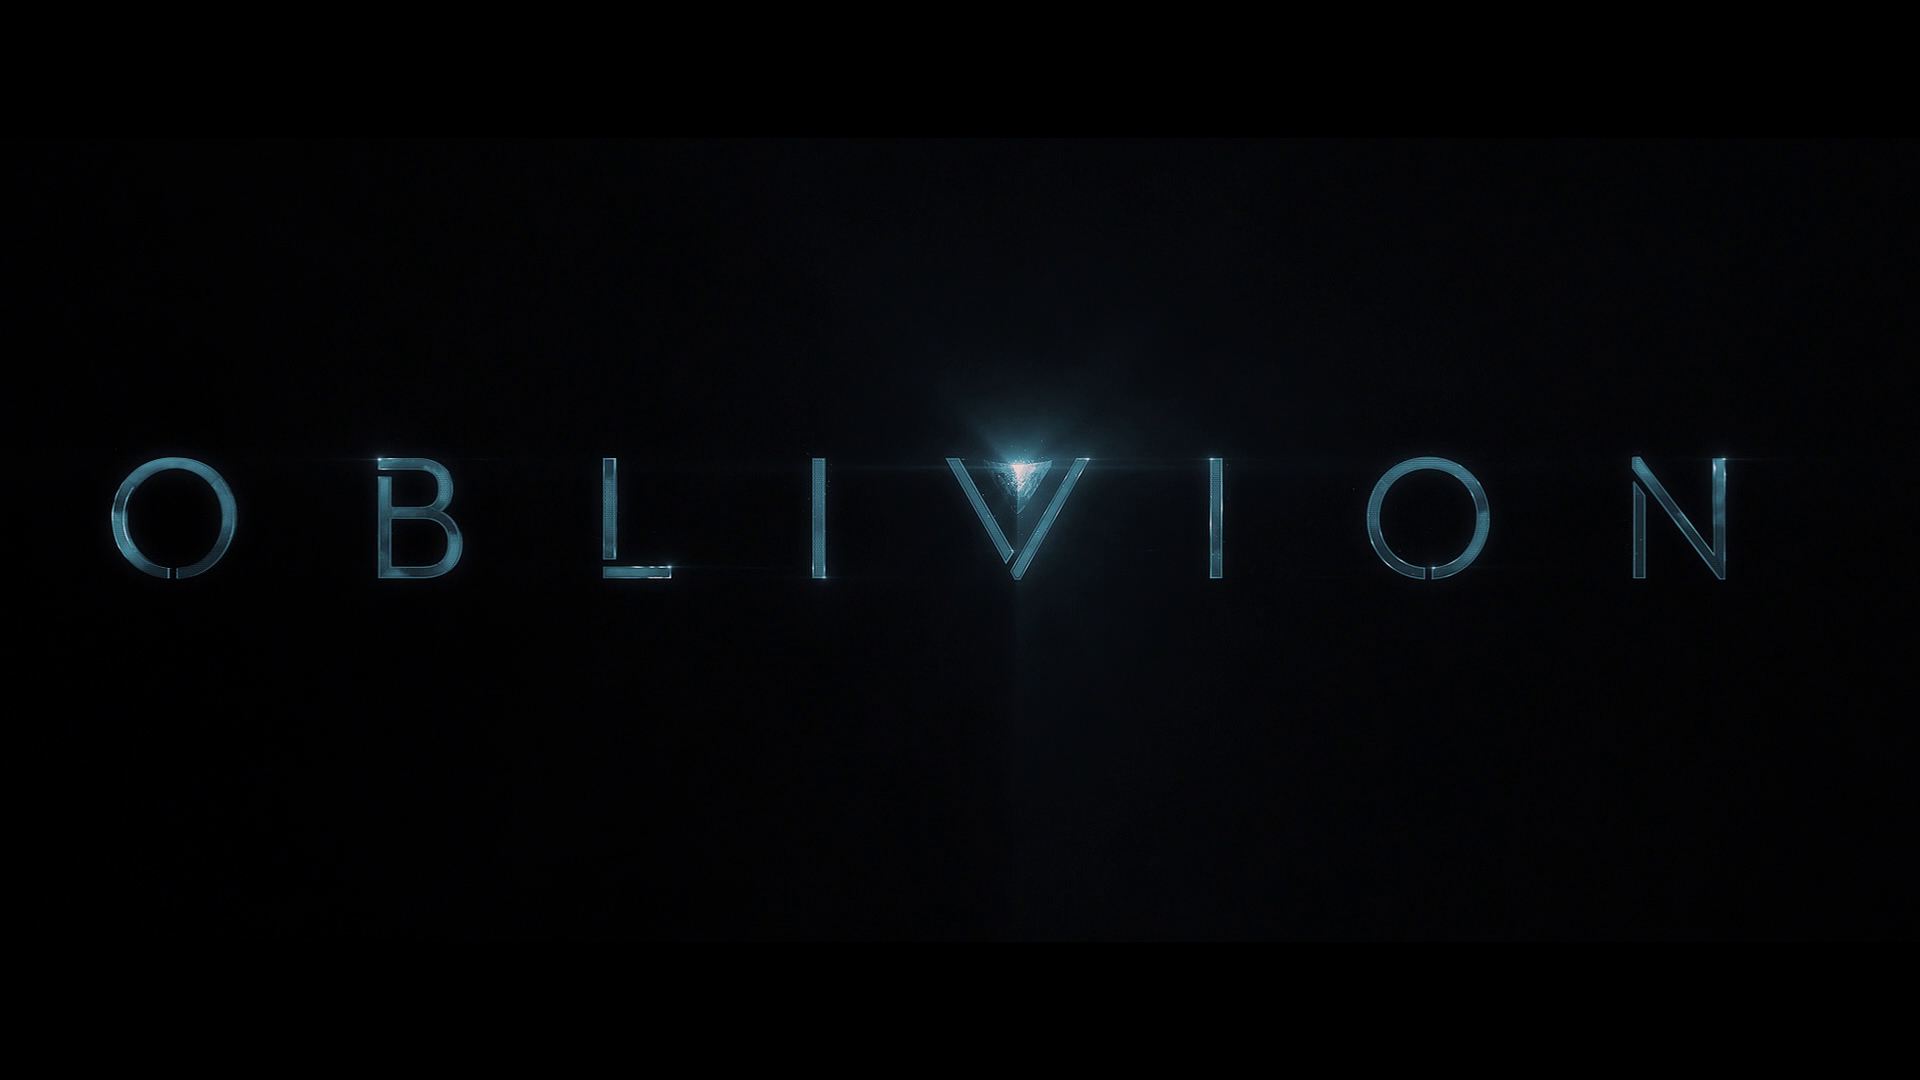 oblivion (blu-ray) : dvd talk review of the blu-ray